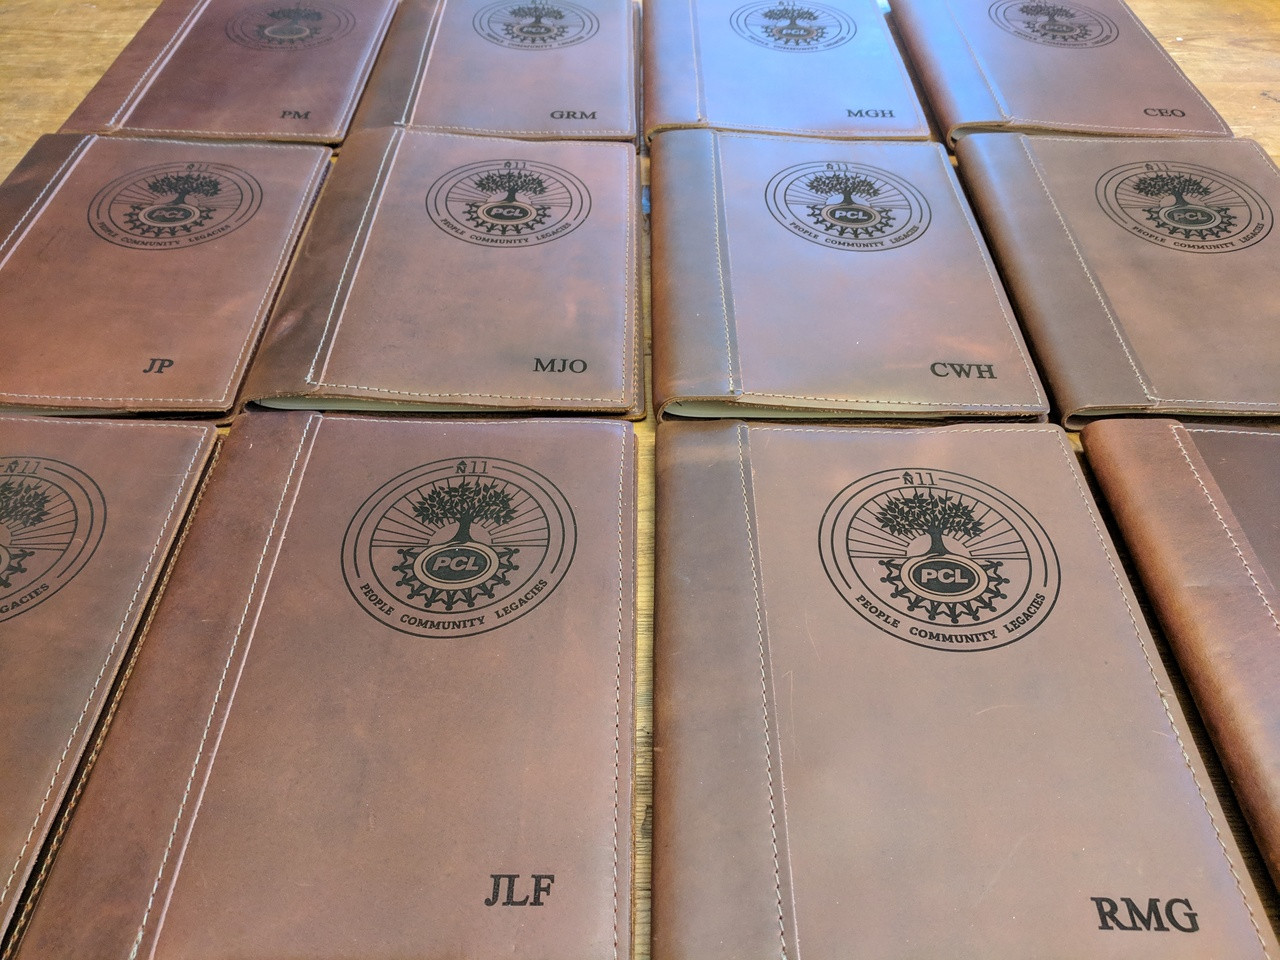 Engraved Journals with Logo